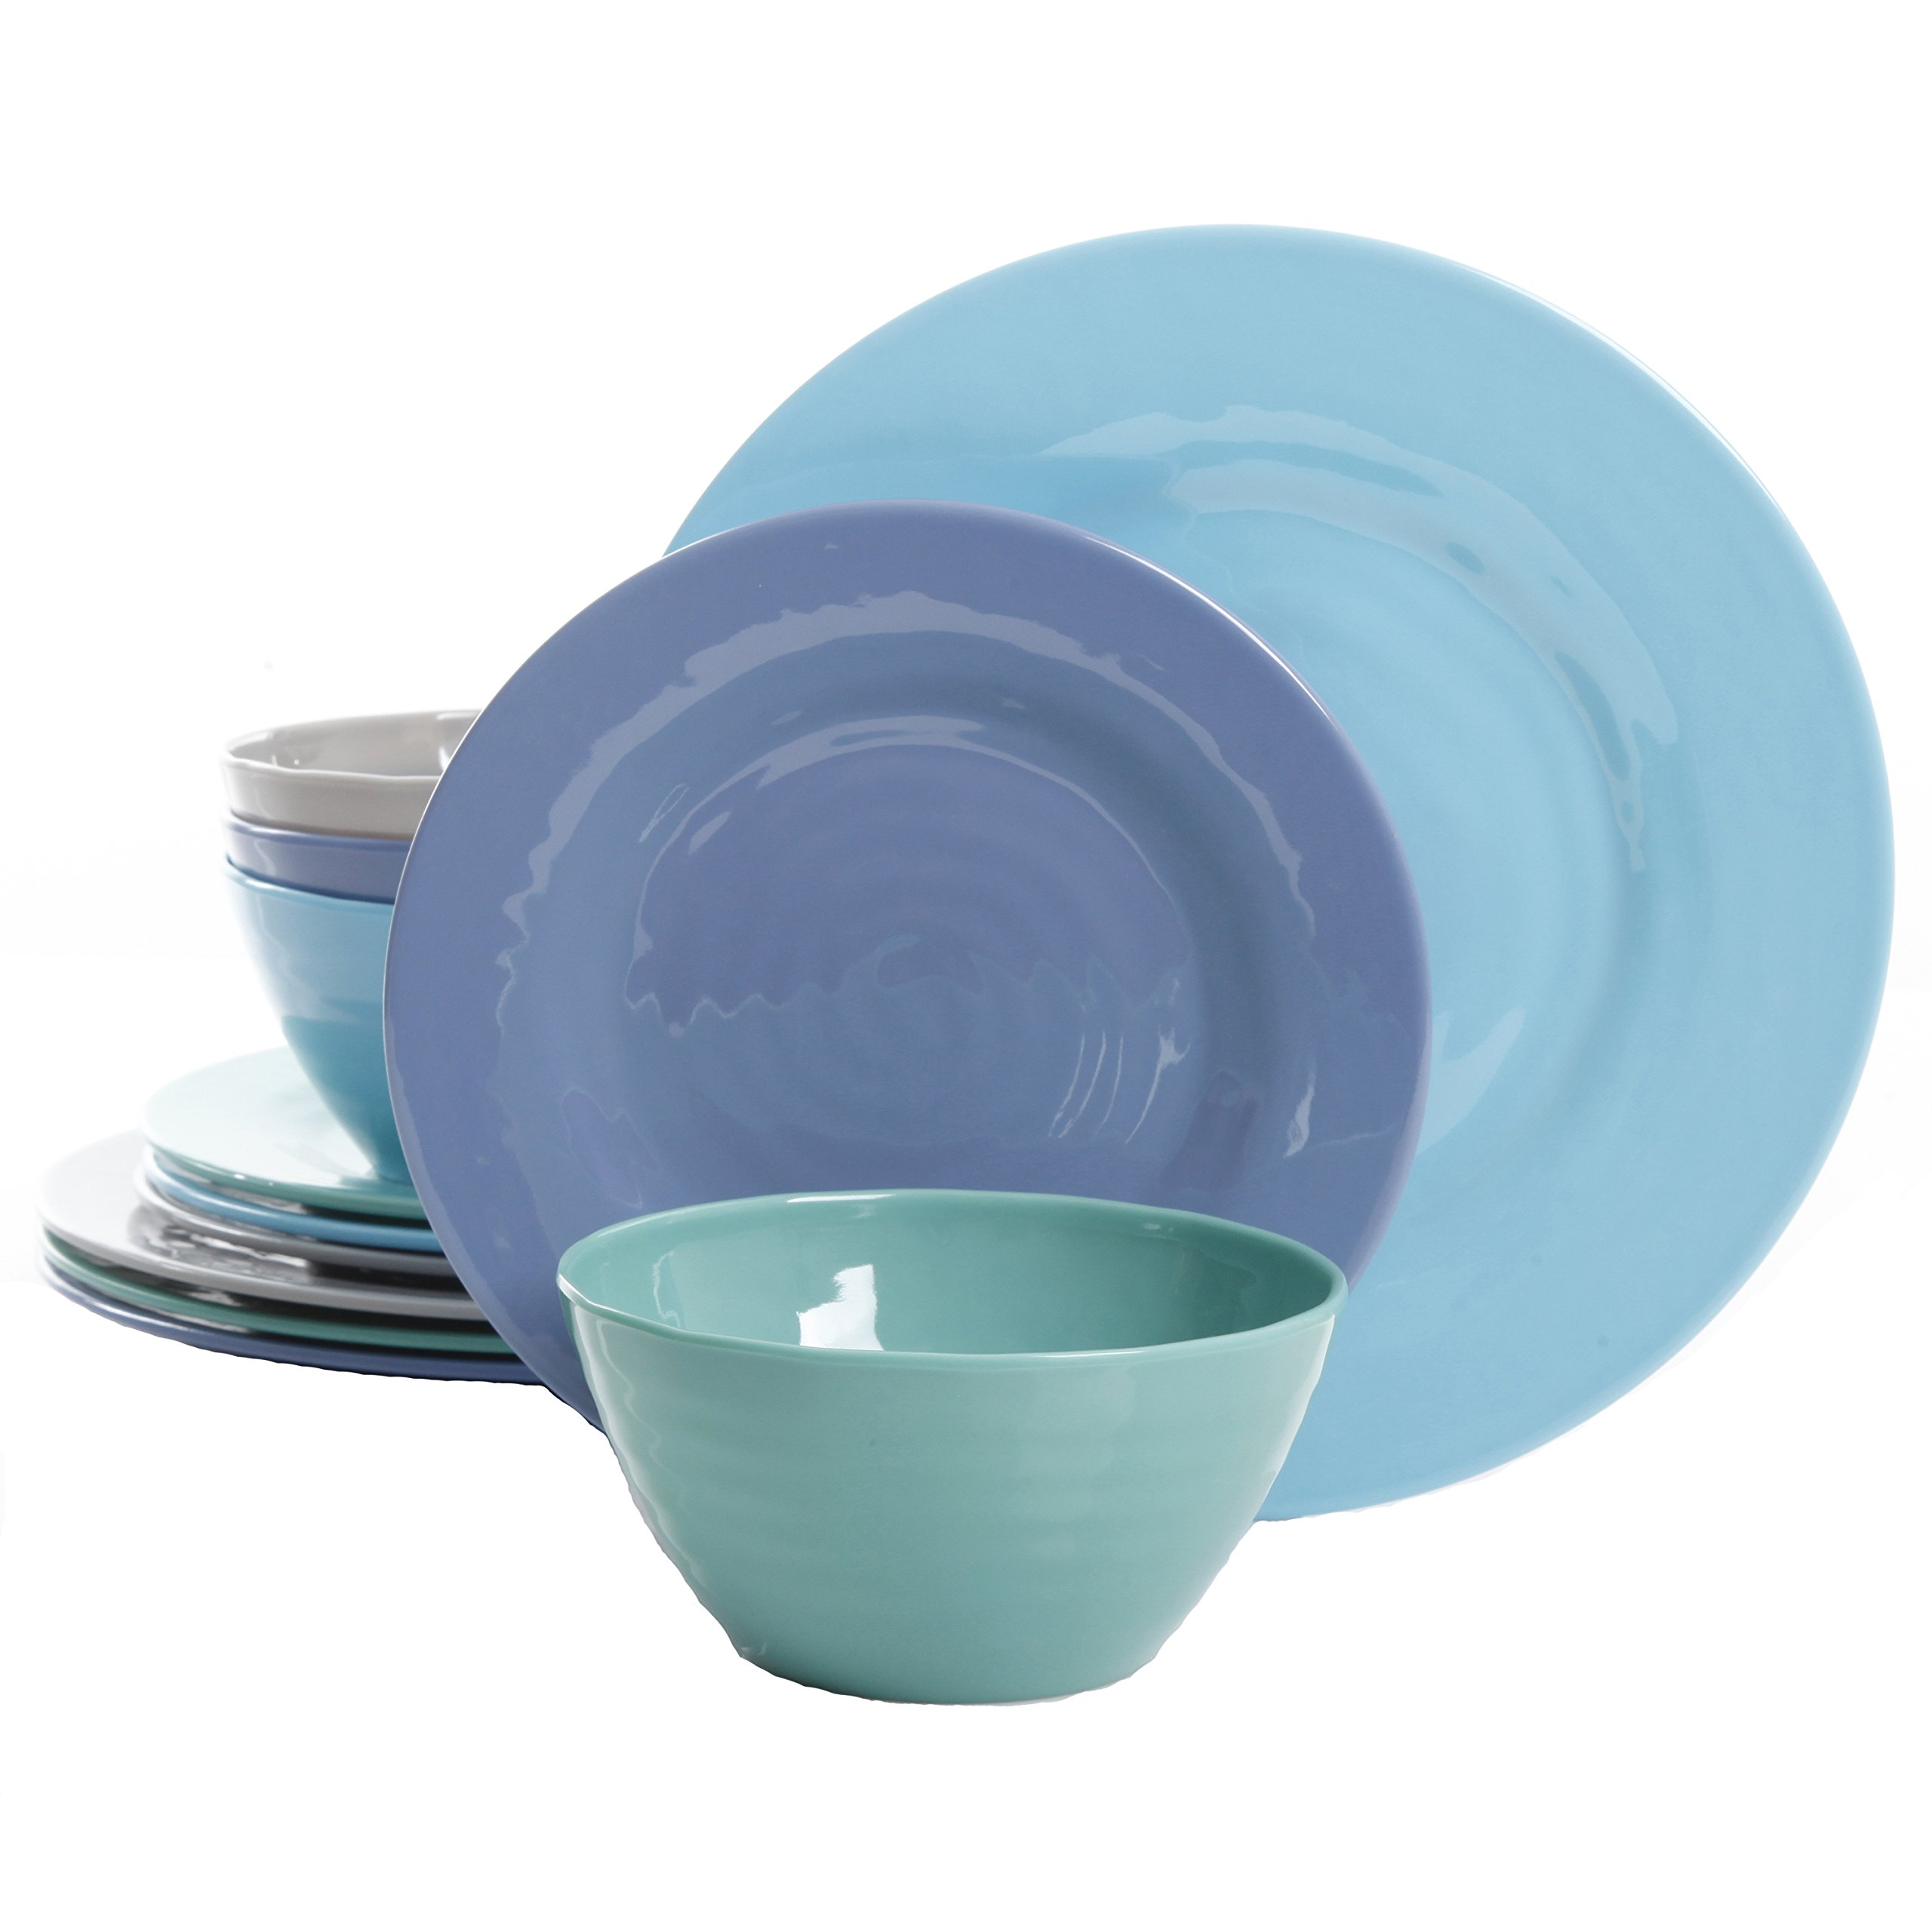 Gibson Home 116936.12 Brist Melamine Dinnerware Set, Blue